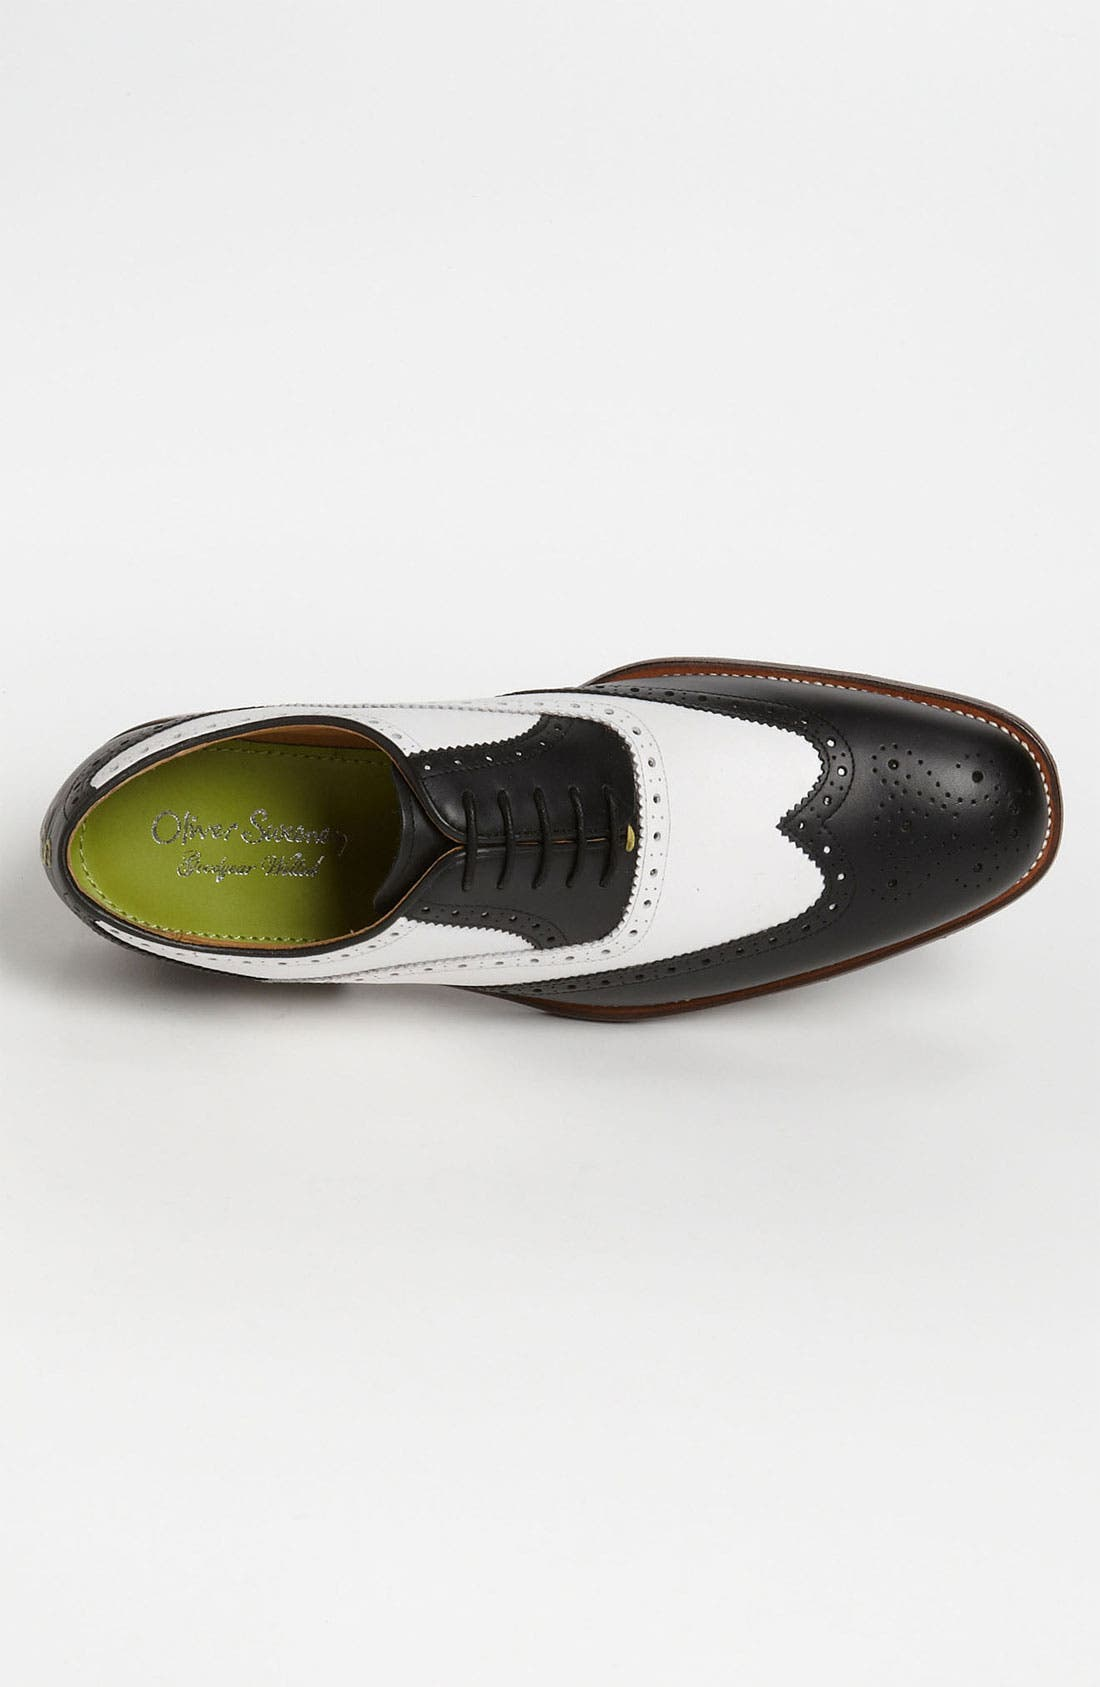 Alternate Image 3  - Oliver Sweeney 'Royale' Wingtip Golf Shoe (Men)